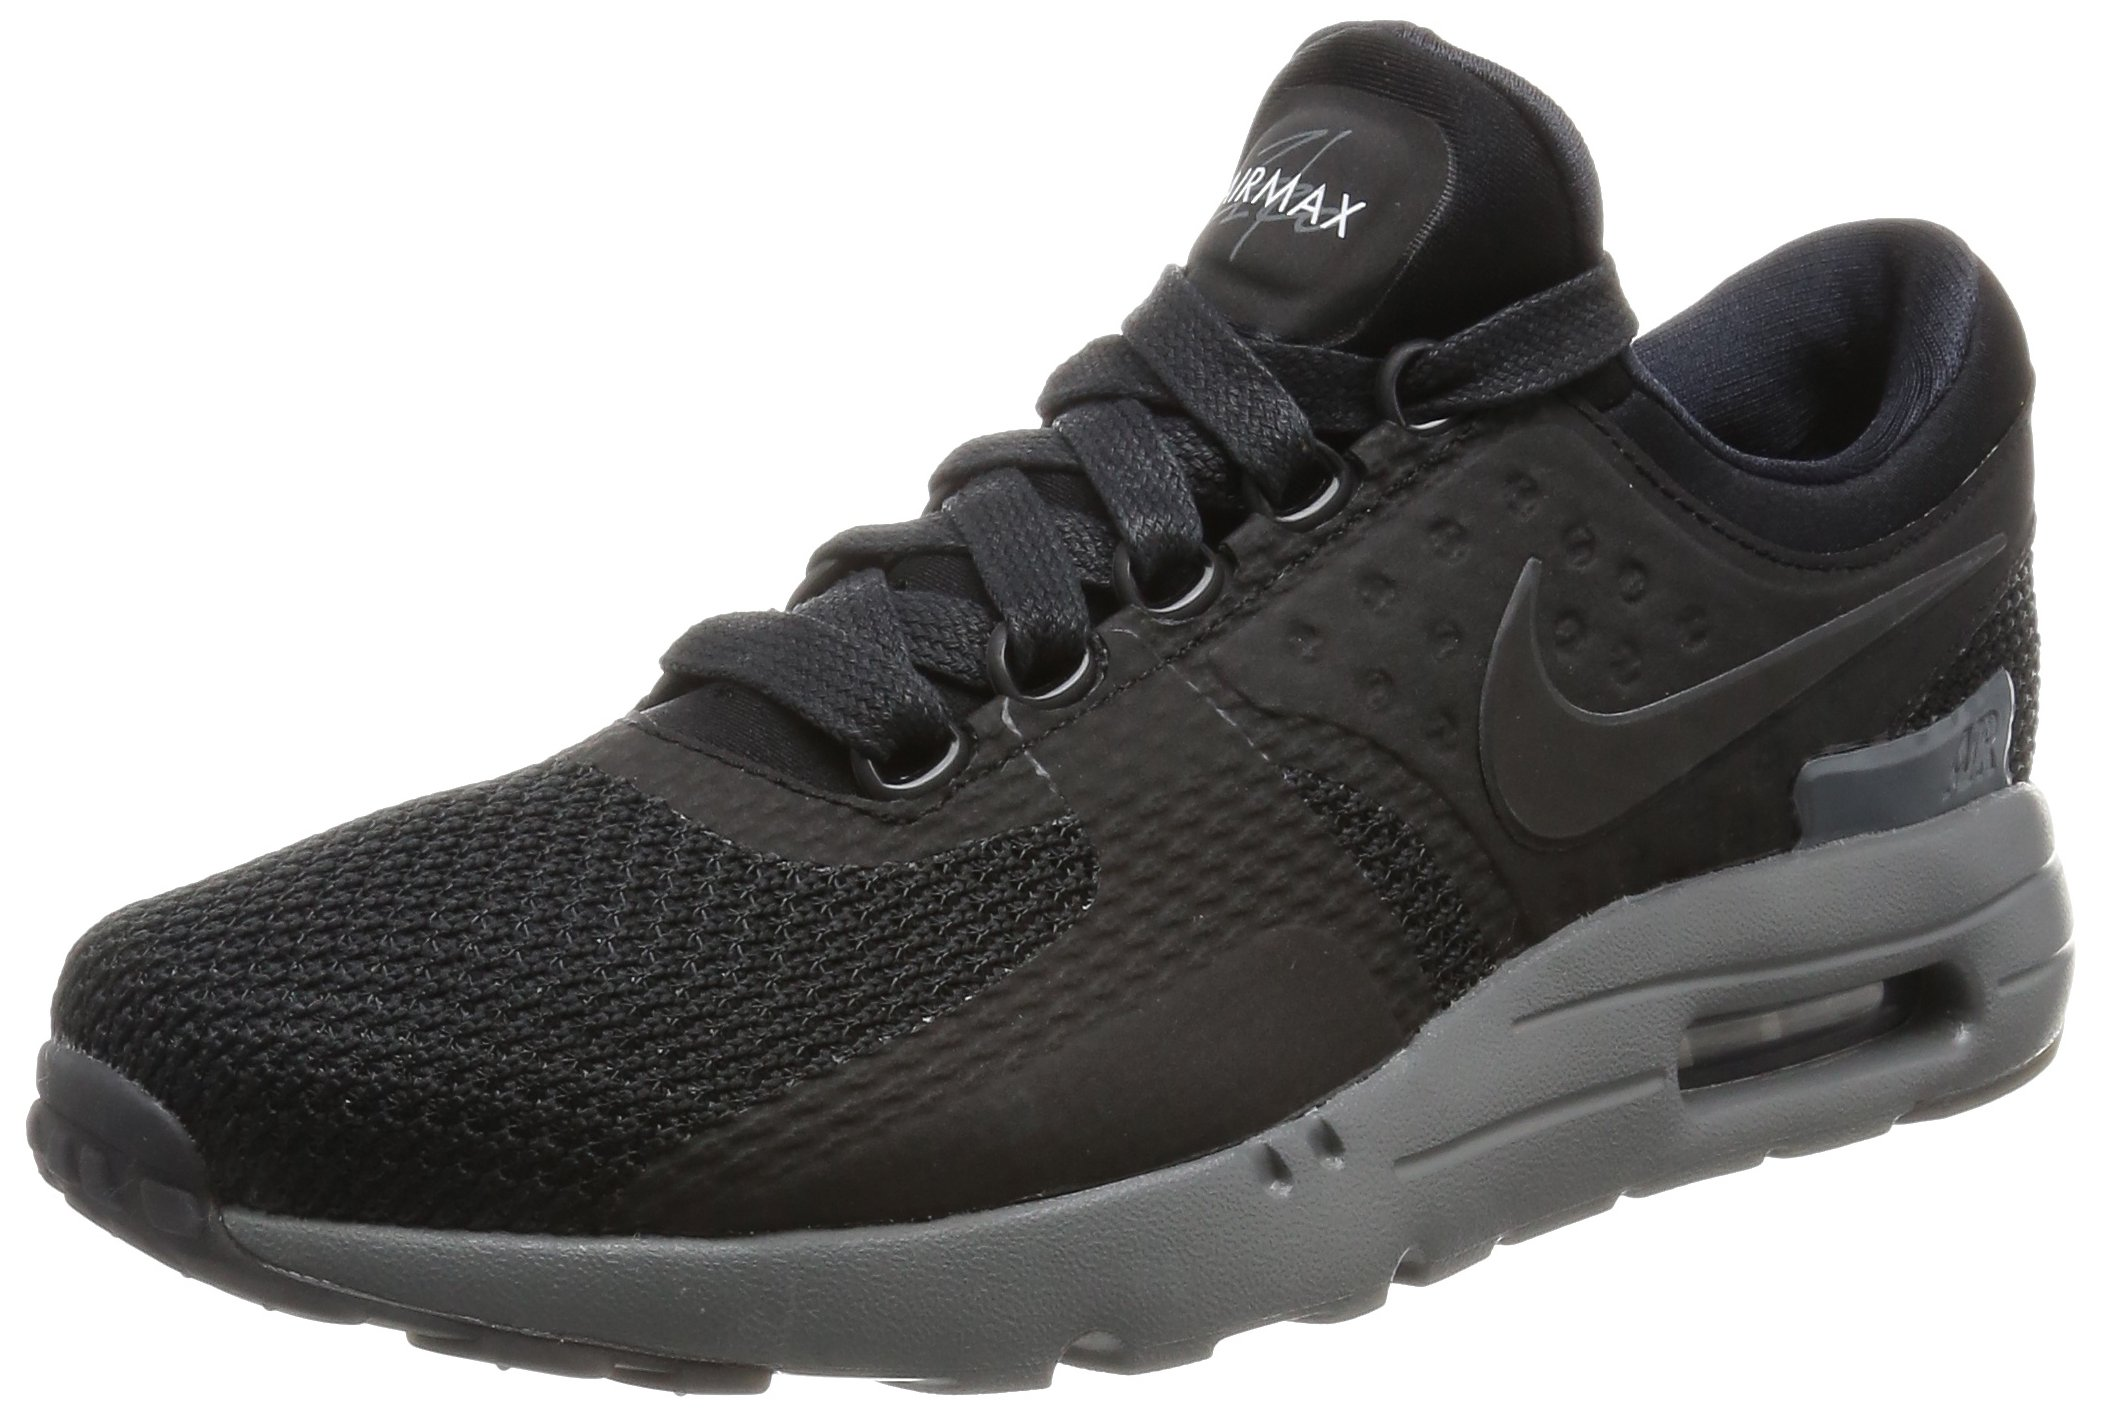 Nike Air Max Zero QS Mens Running Trainers 789695 Sneakers Shoes (UK 6 US 7 EU 40, Black Dark Grey 001)